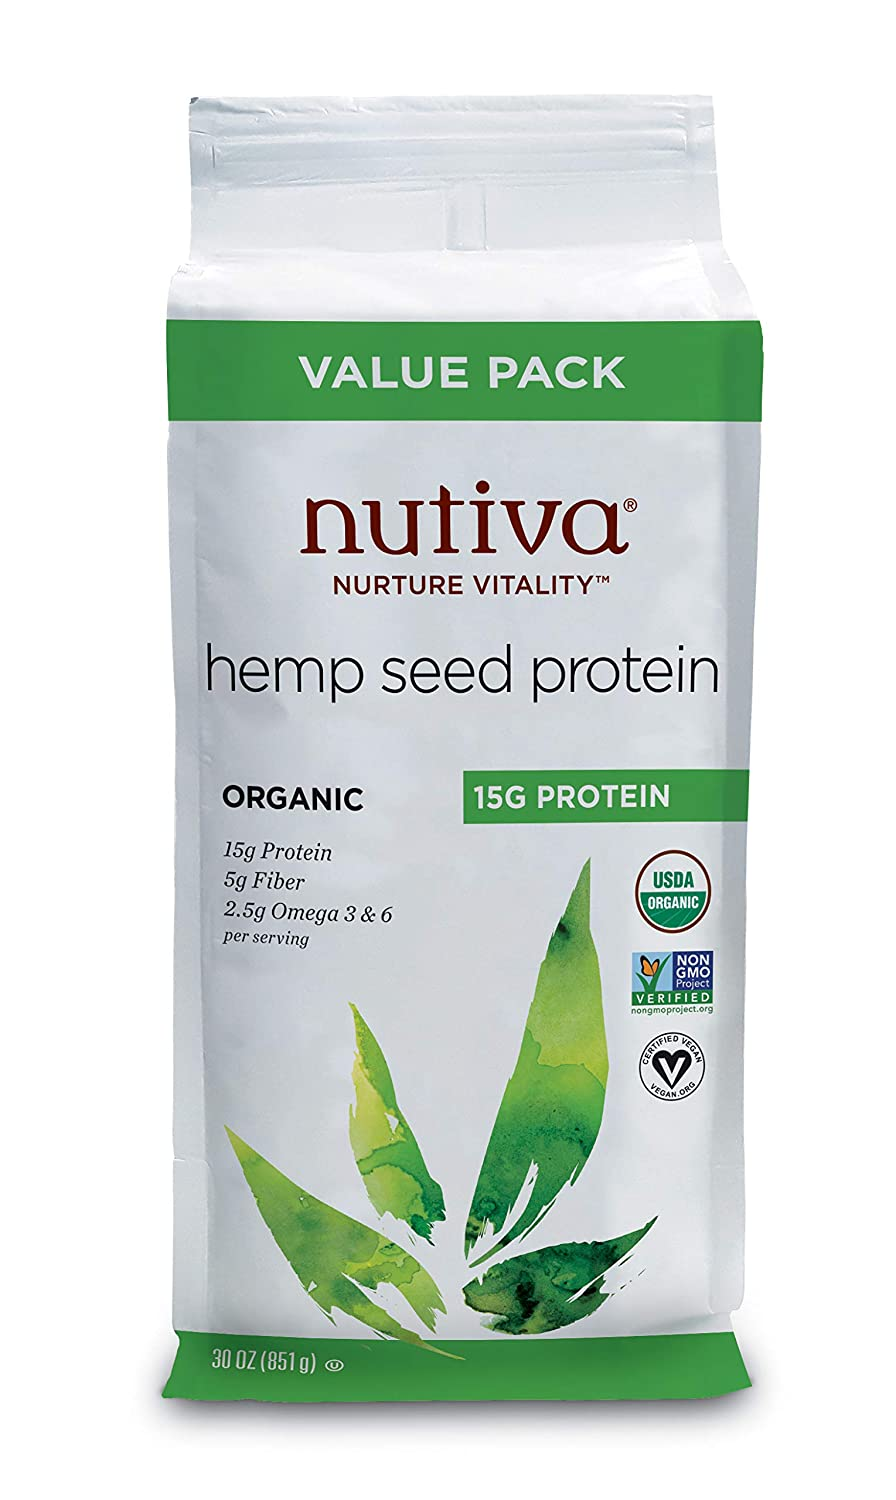 Nutiva Organic Cold-Pressed Raw Hemp Seed Protein Powder, 15G Protein, 30 Ounce | USDA Organic, Non-GMO | Vegan, Gluten-Free, Keto & Paleo | Plant Protein with Essential Amino Acids